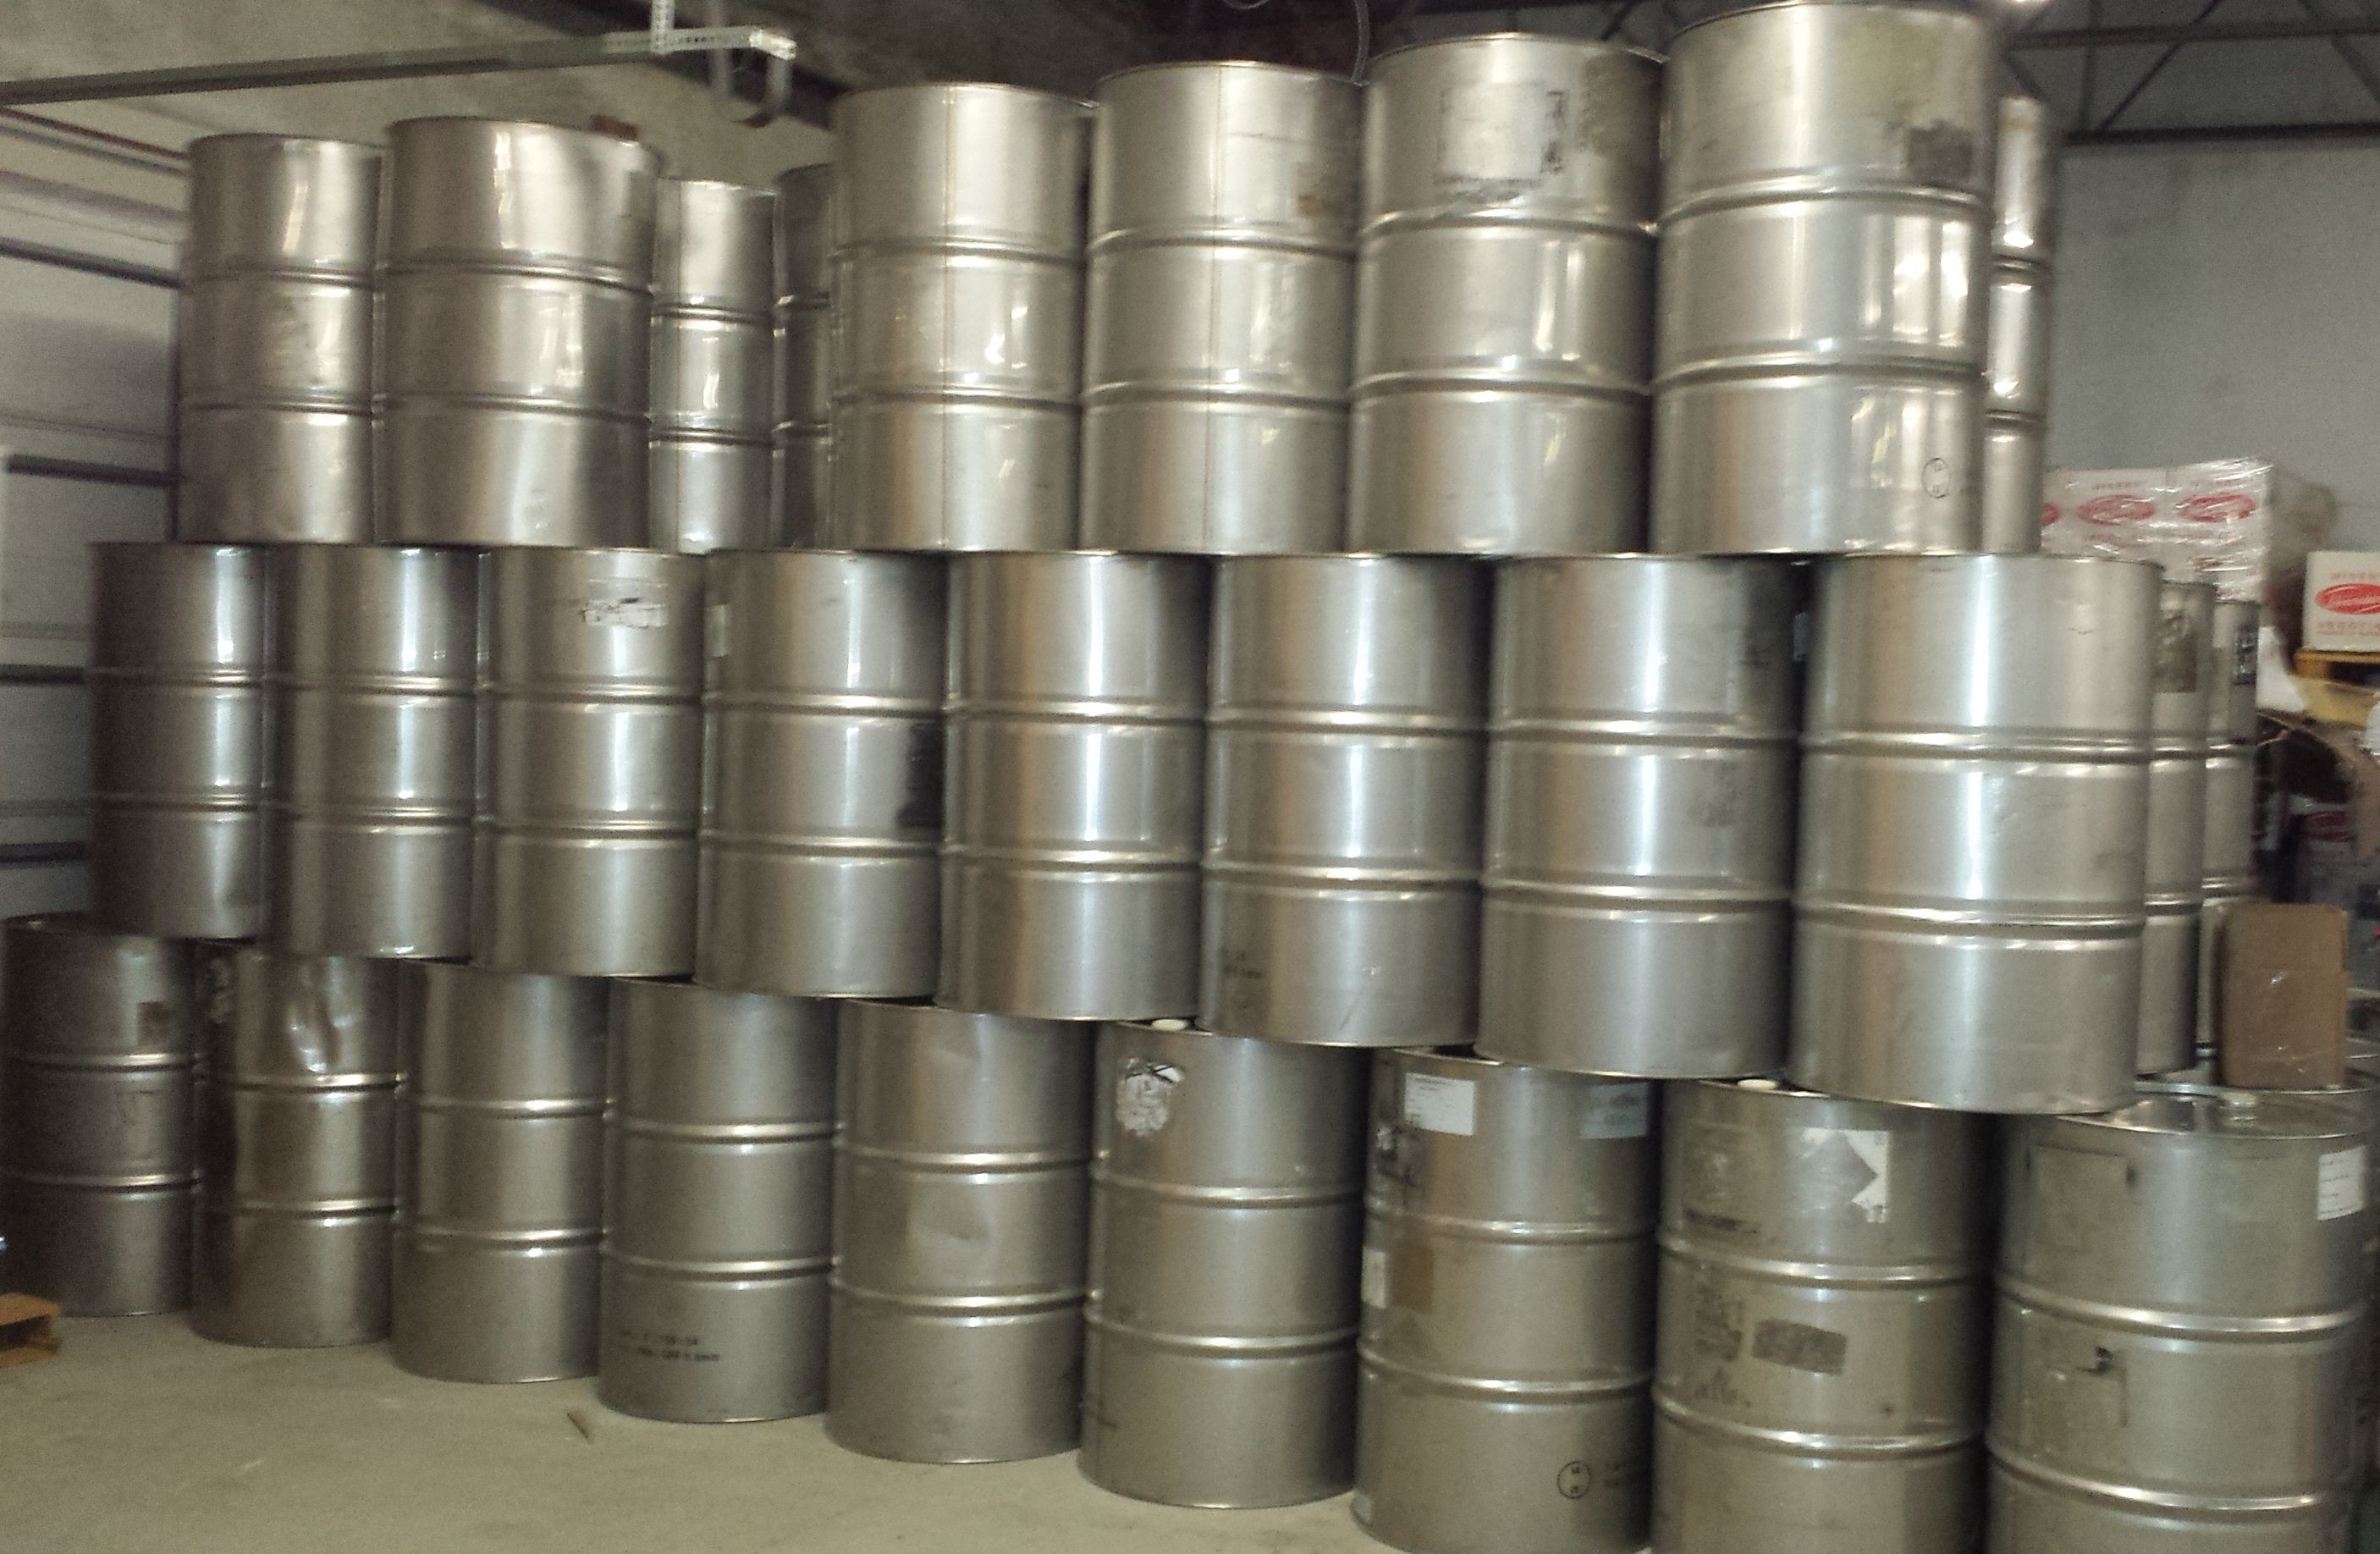 55 Gallon Stainless Steel Drums From Www